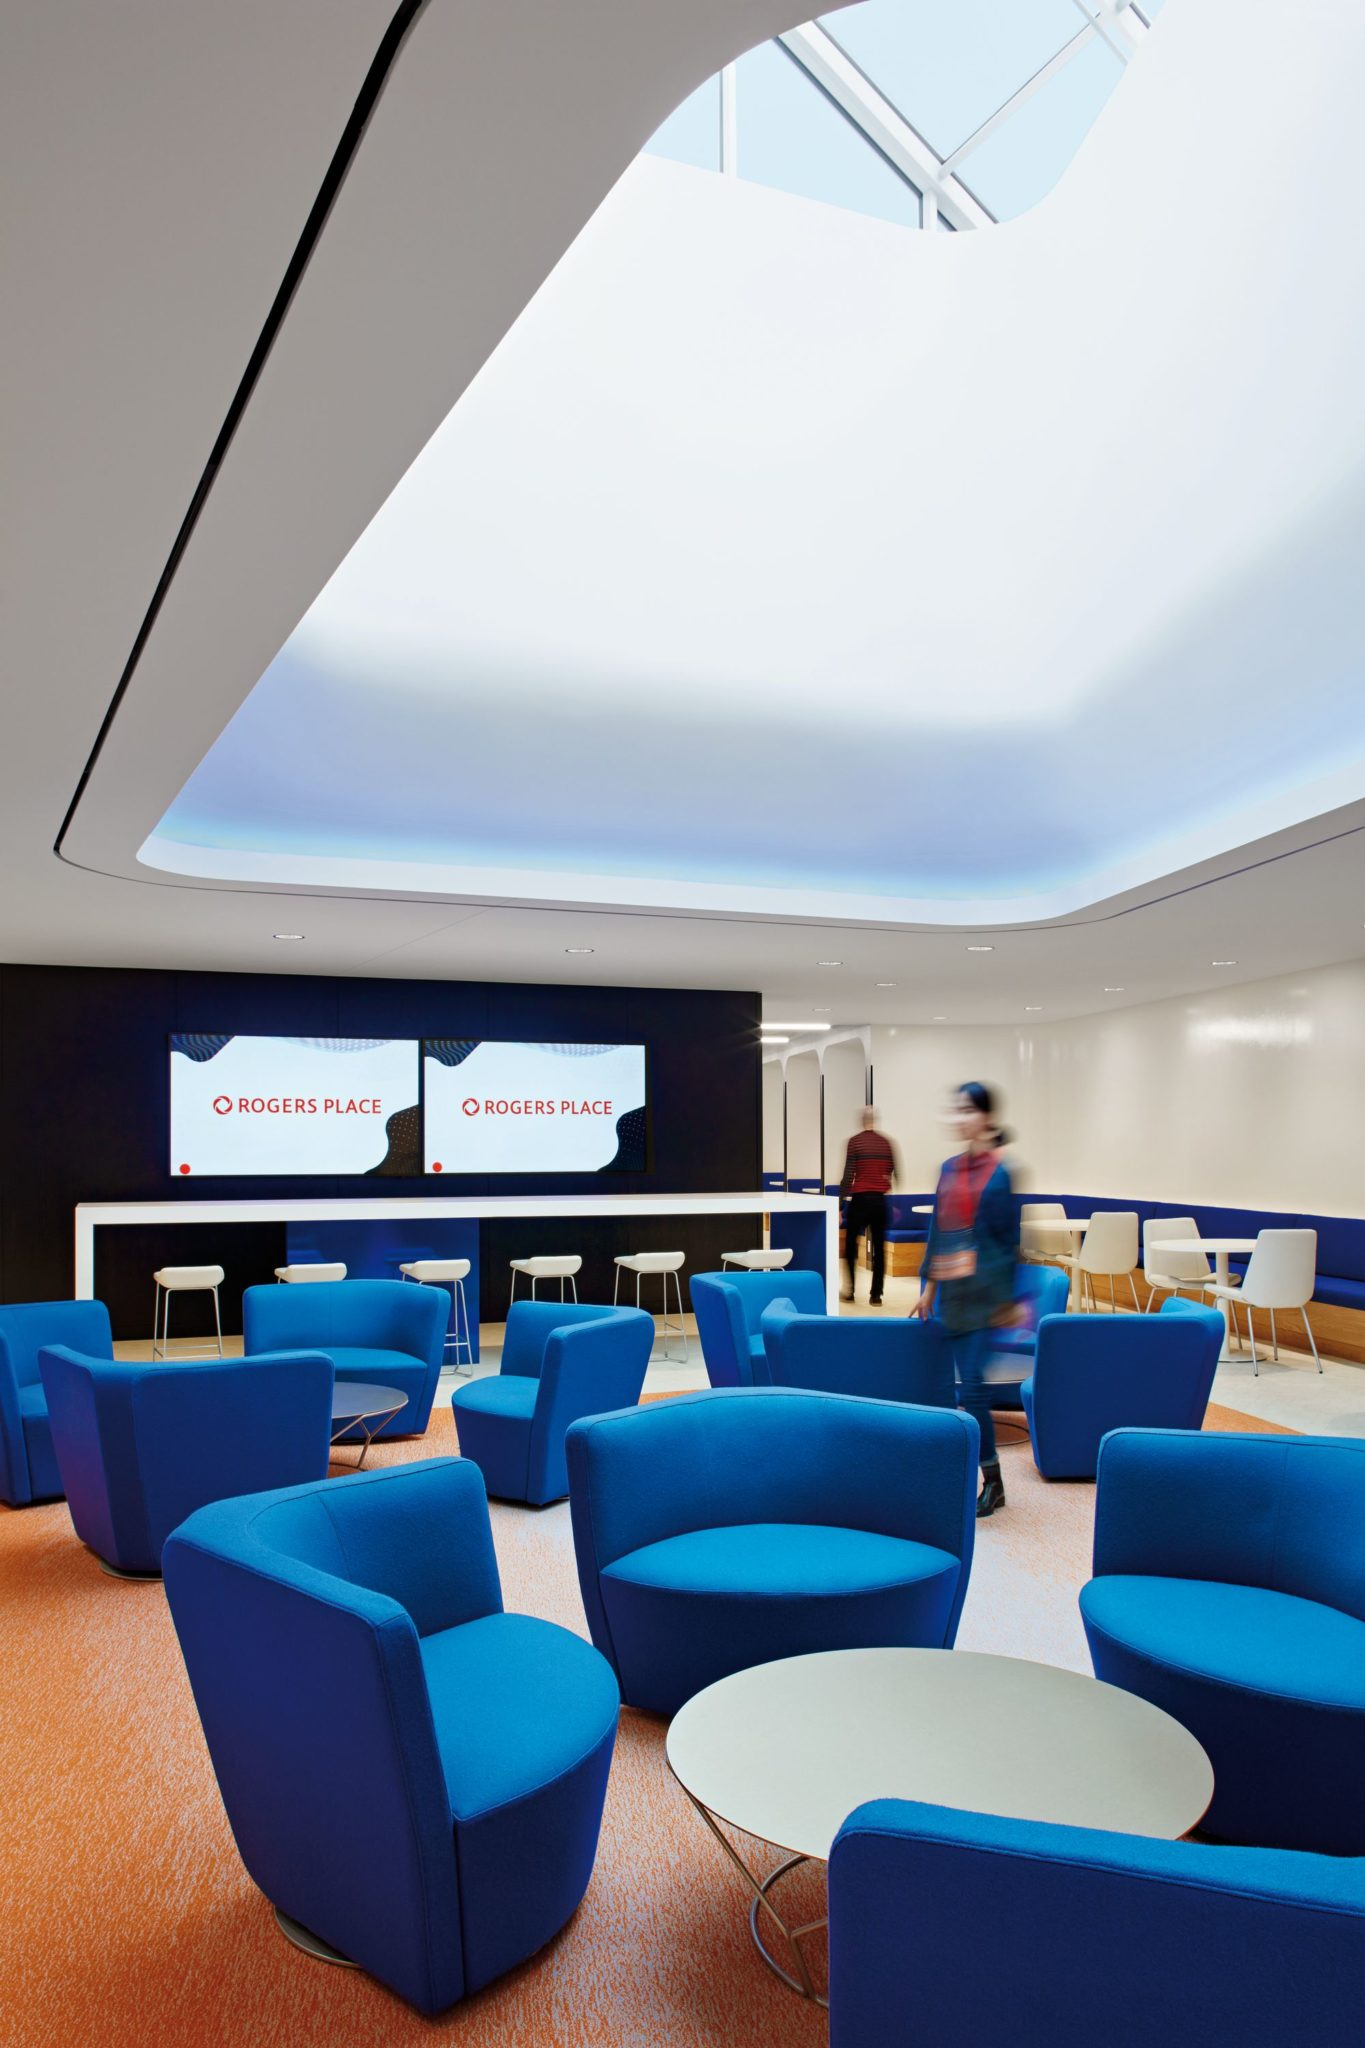 Lunch room encourages interaction between employees